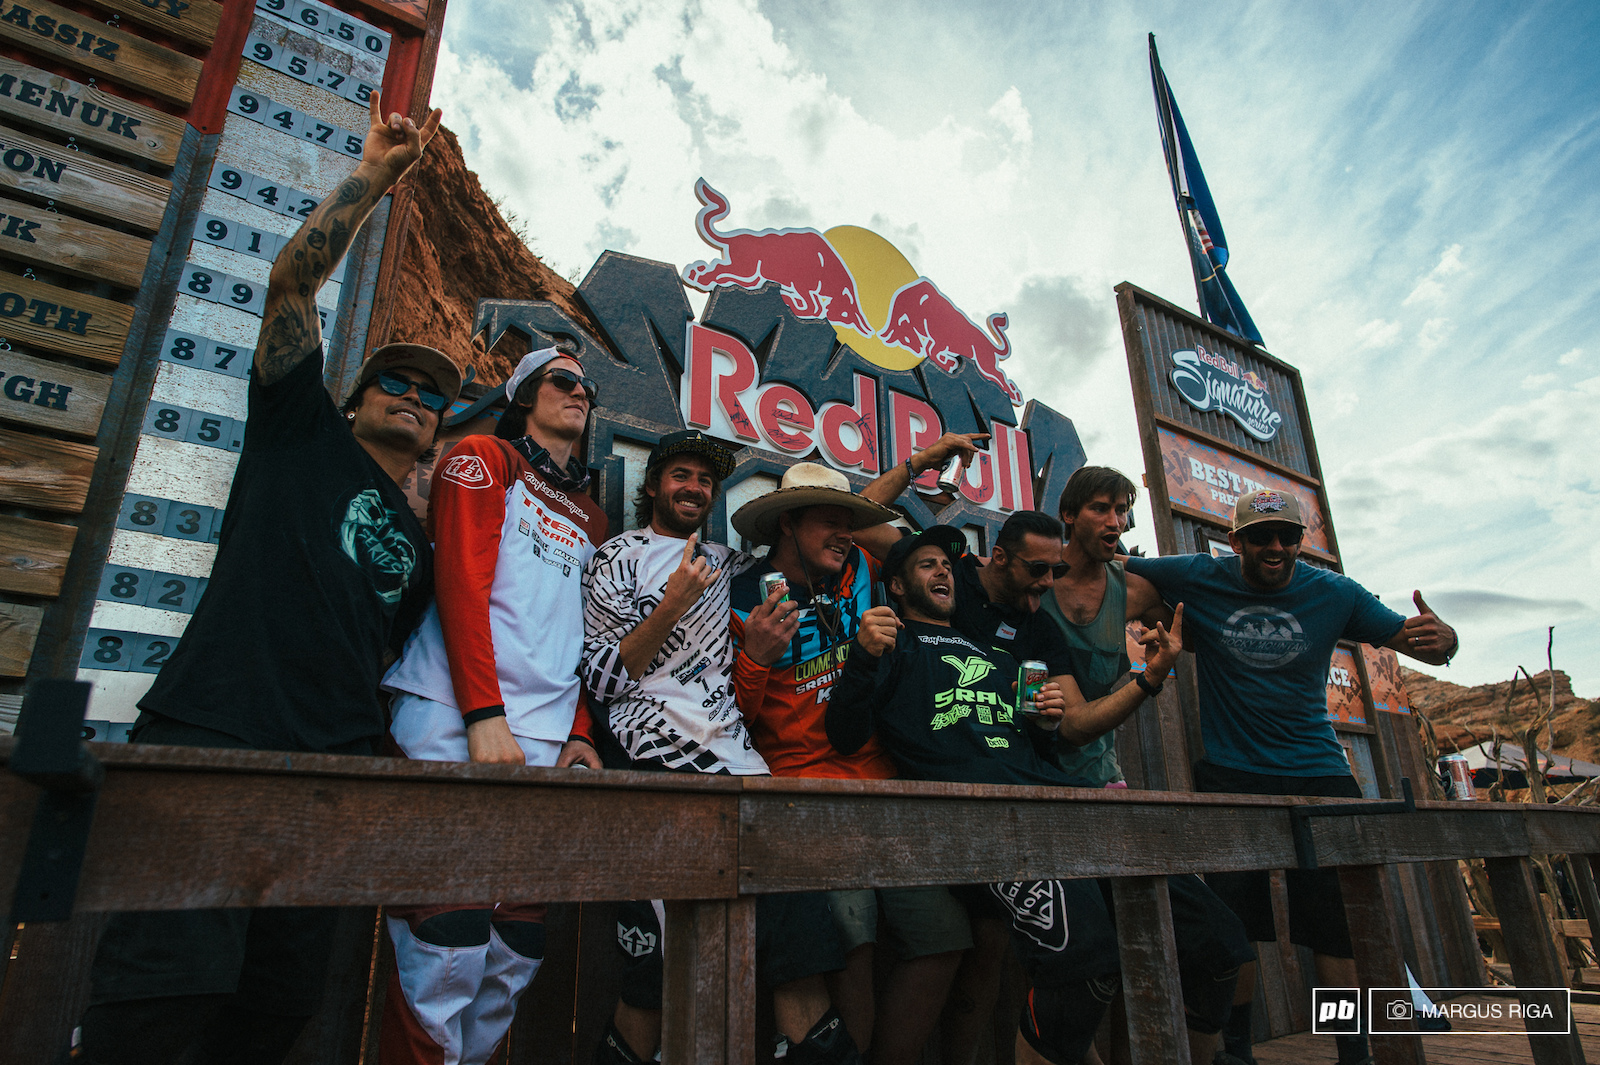 All the past winners of the Red Bull Rampage Andreu Lacondeguy Branden Semenuk Kurt Sorge Kyle Strait Cam Zink Cedric Gracia Tyler Klassen and Wade Simmons.